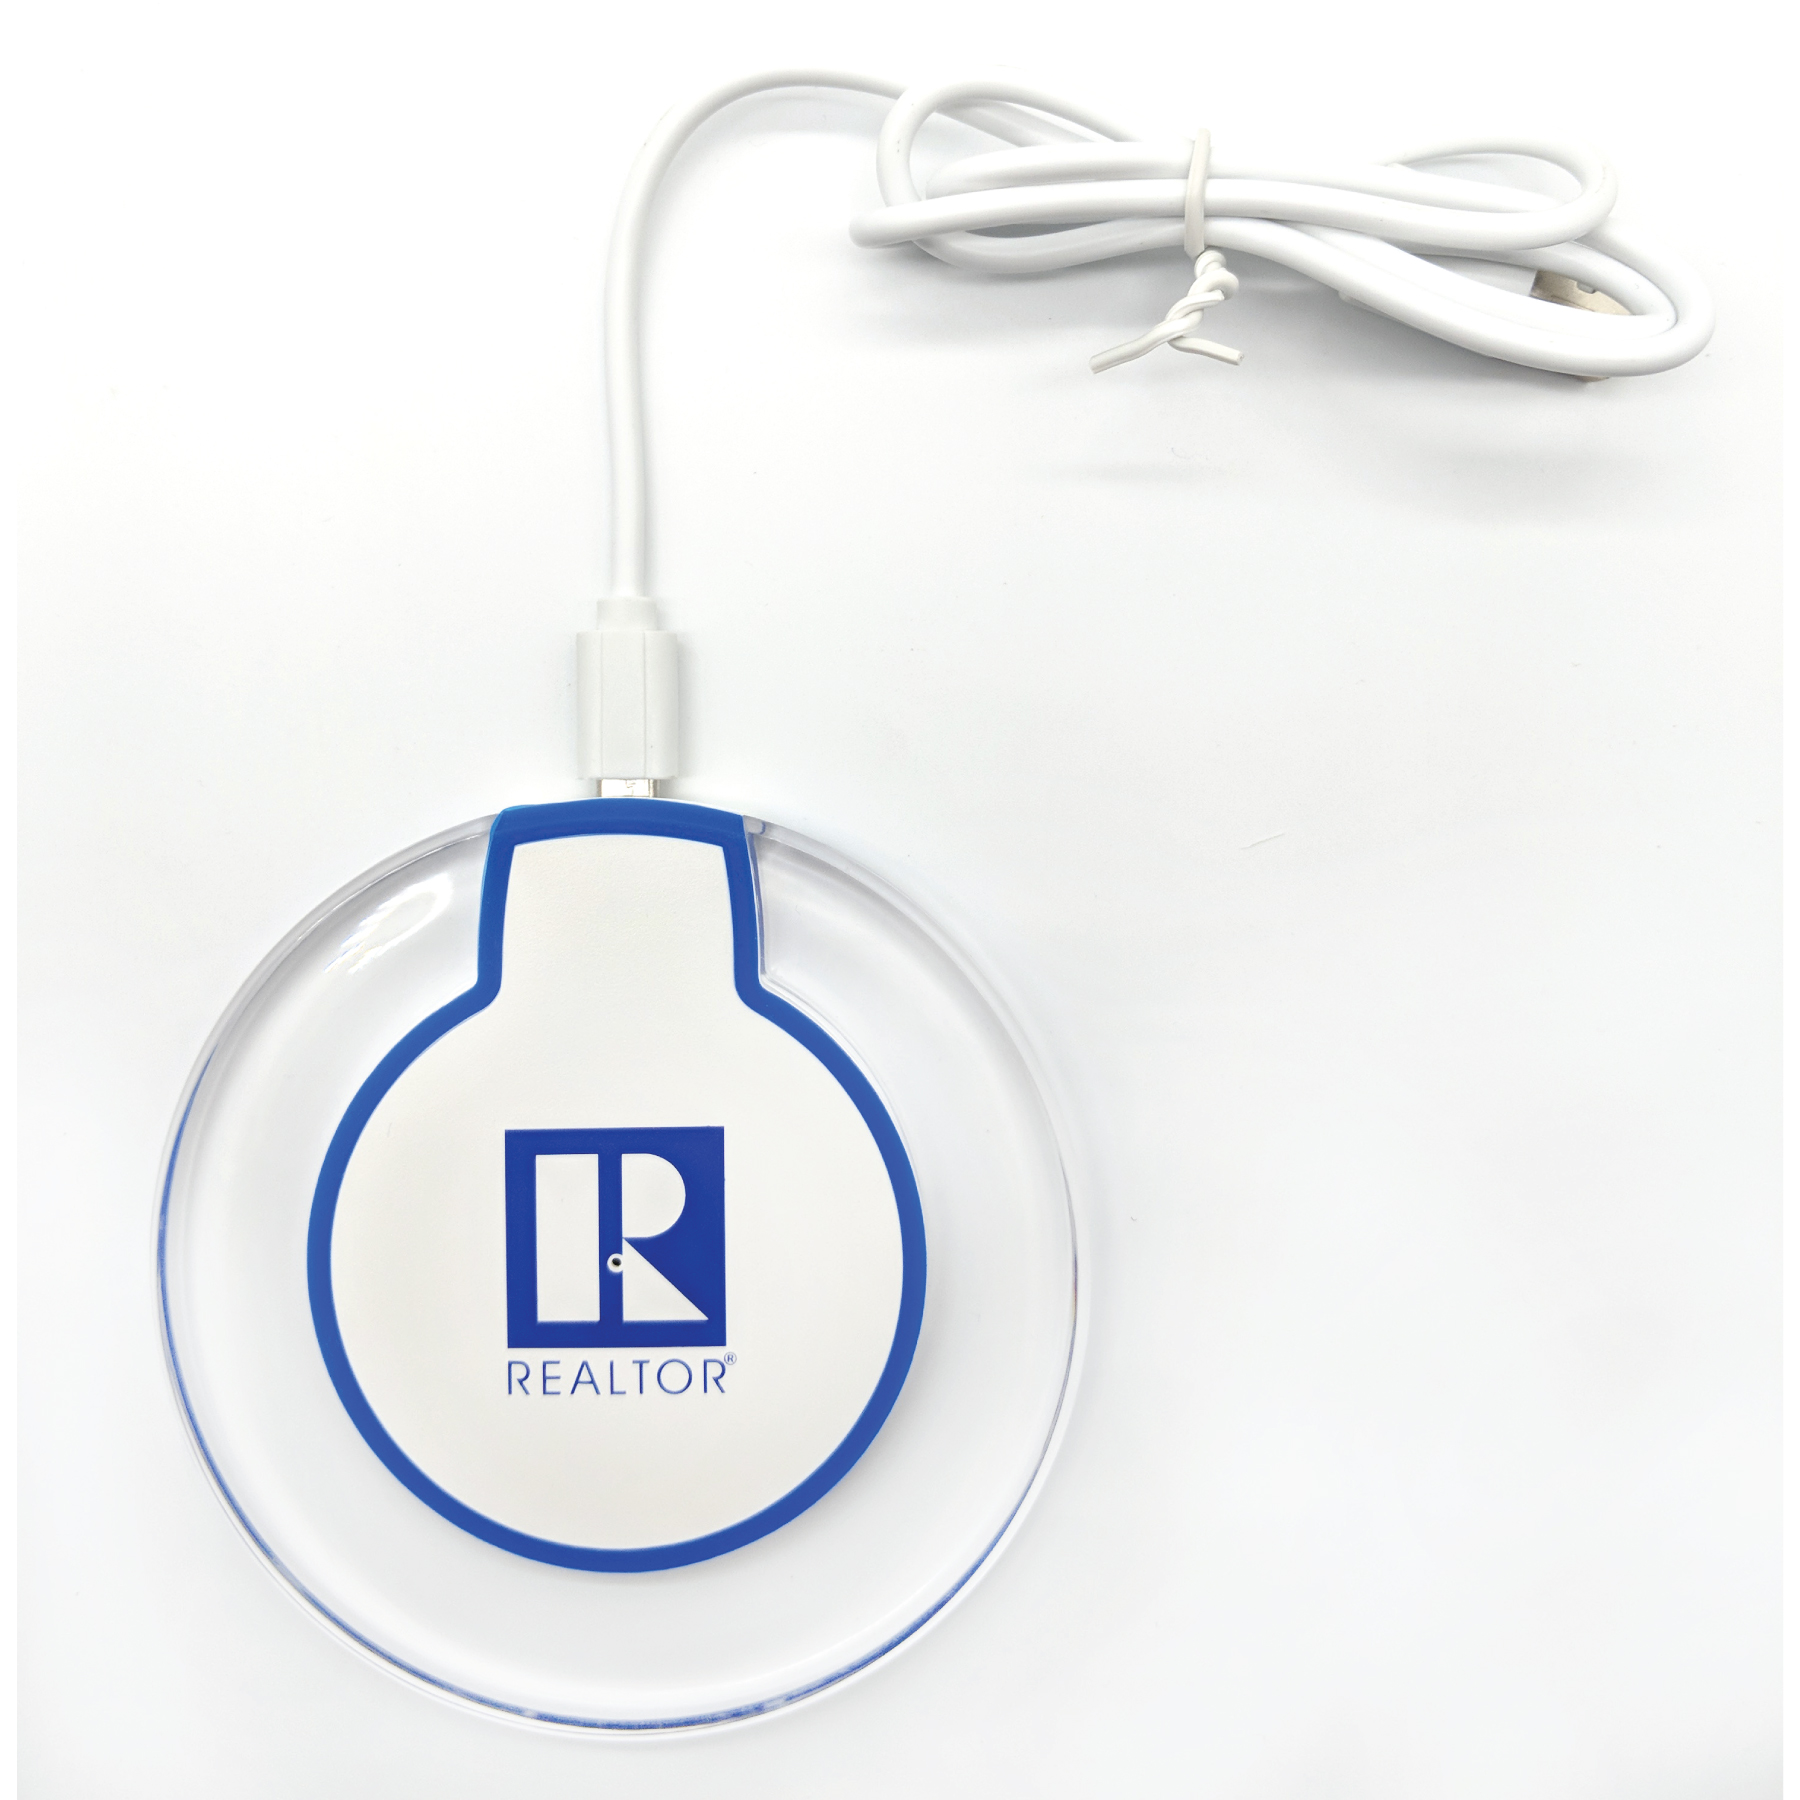 Qi Charger - RTS4690